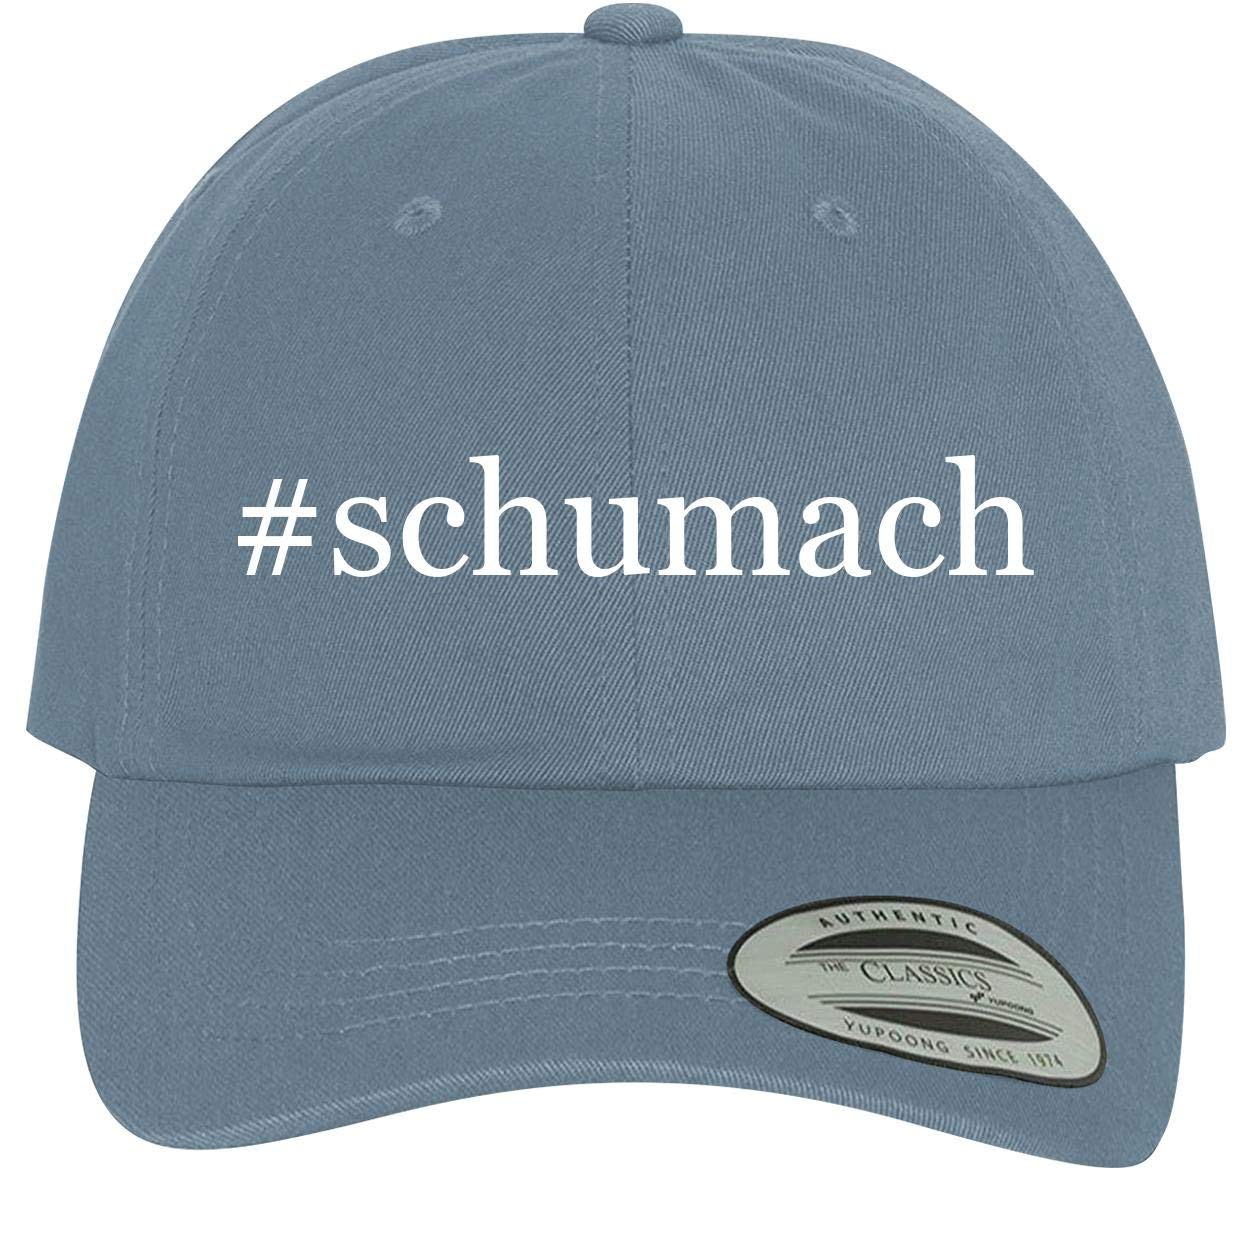 Comfortable Dad Hat Baseball Cap BH Cool Designs #Schumach